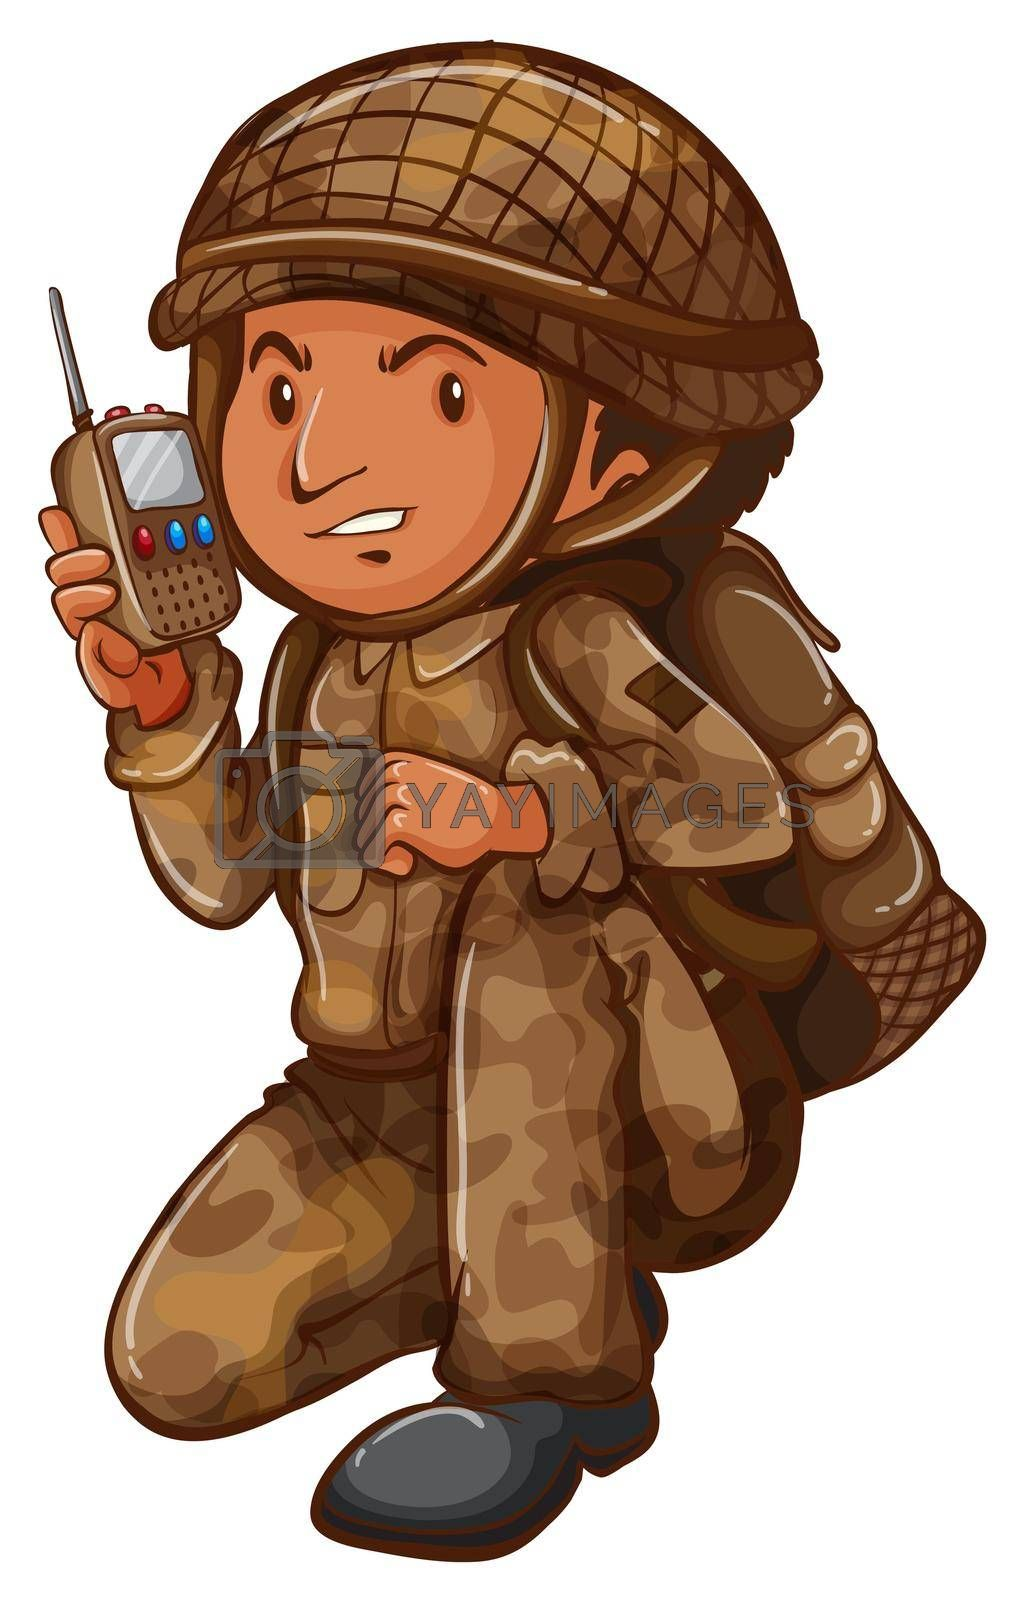 Royalty free image of A soldier with a communication tool by iimages